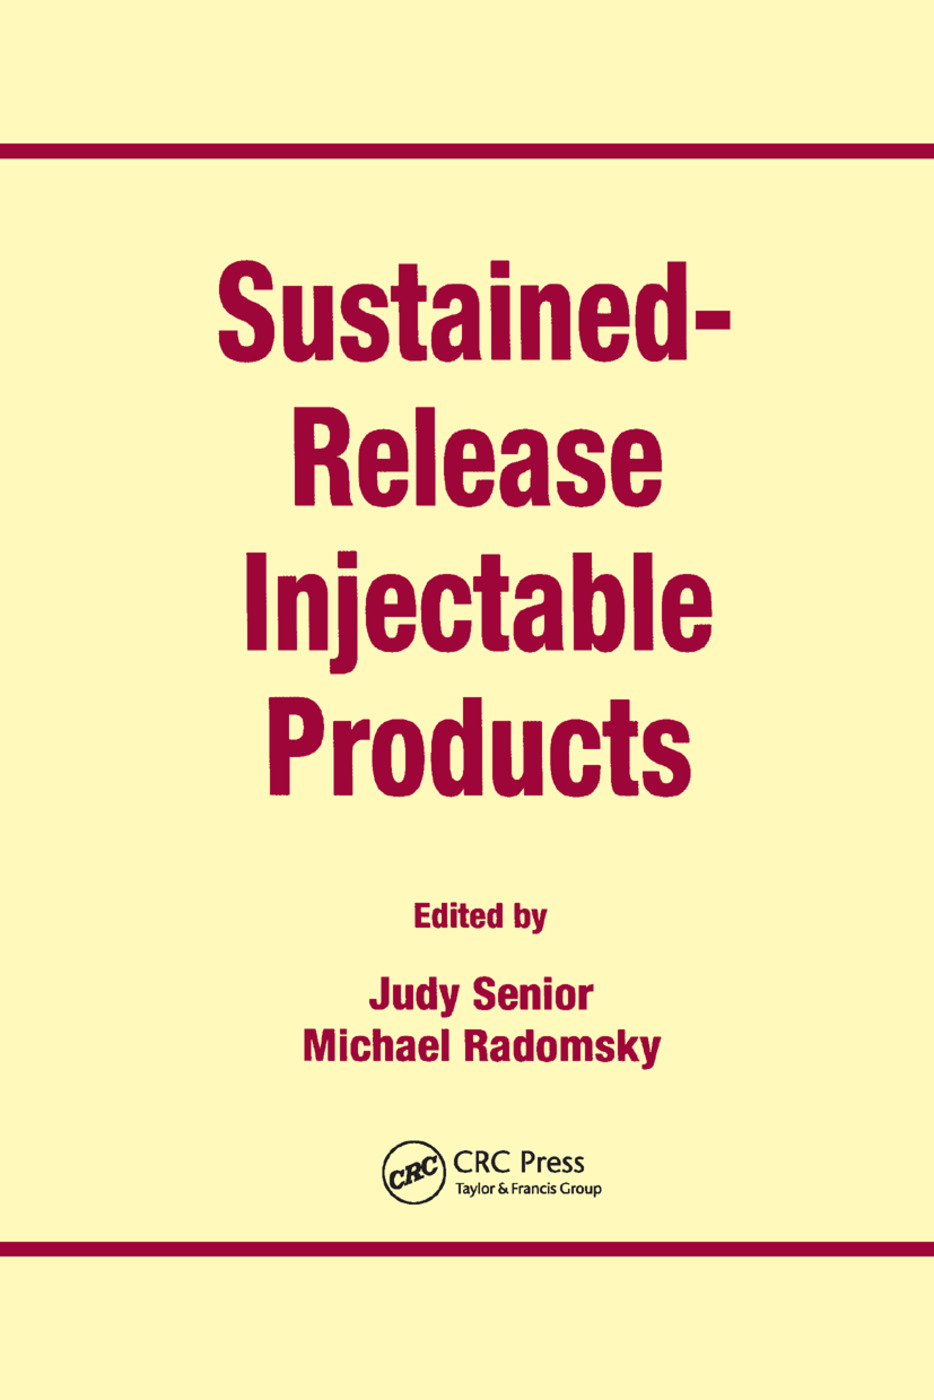 Sustained-Release Injectable Products